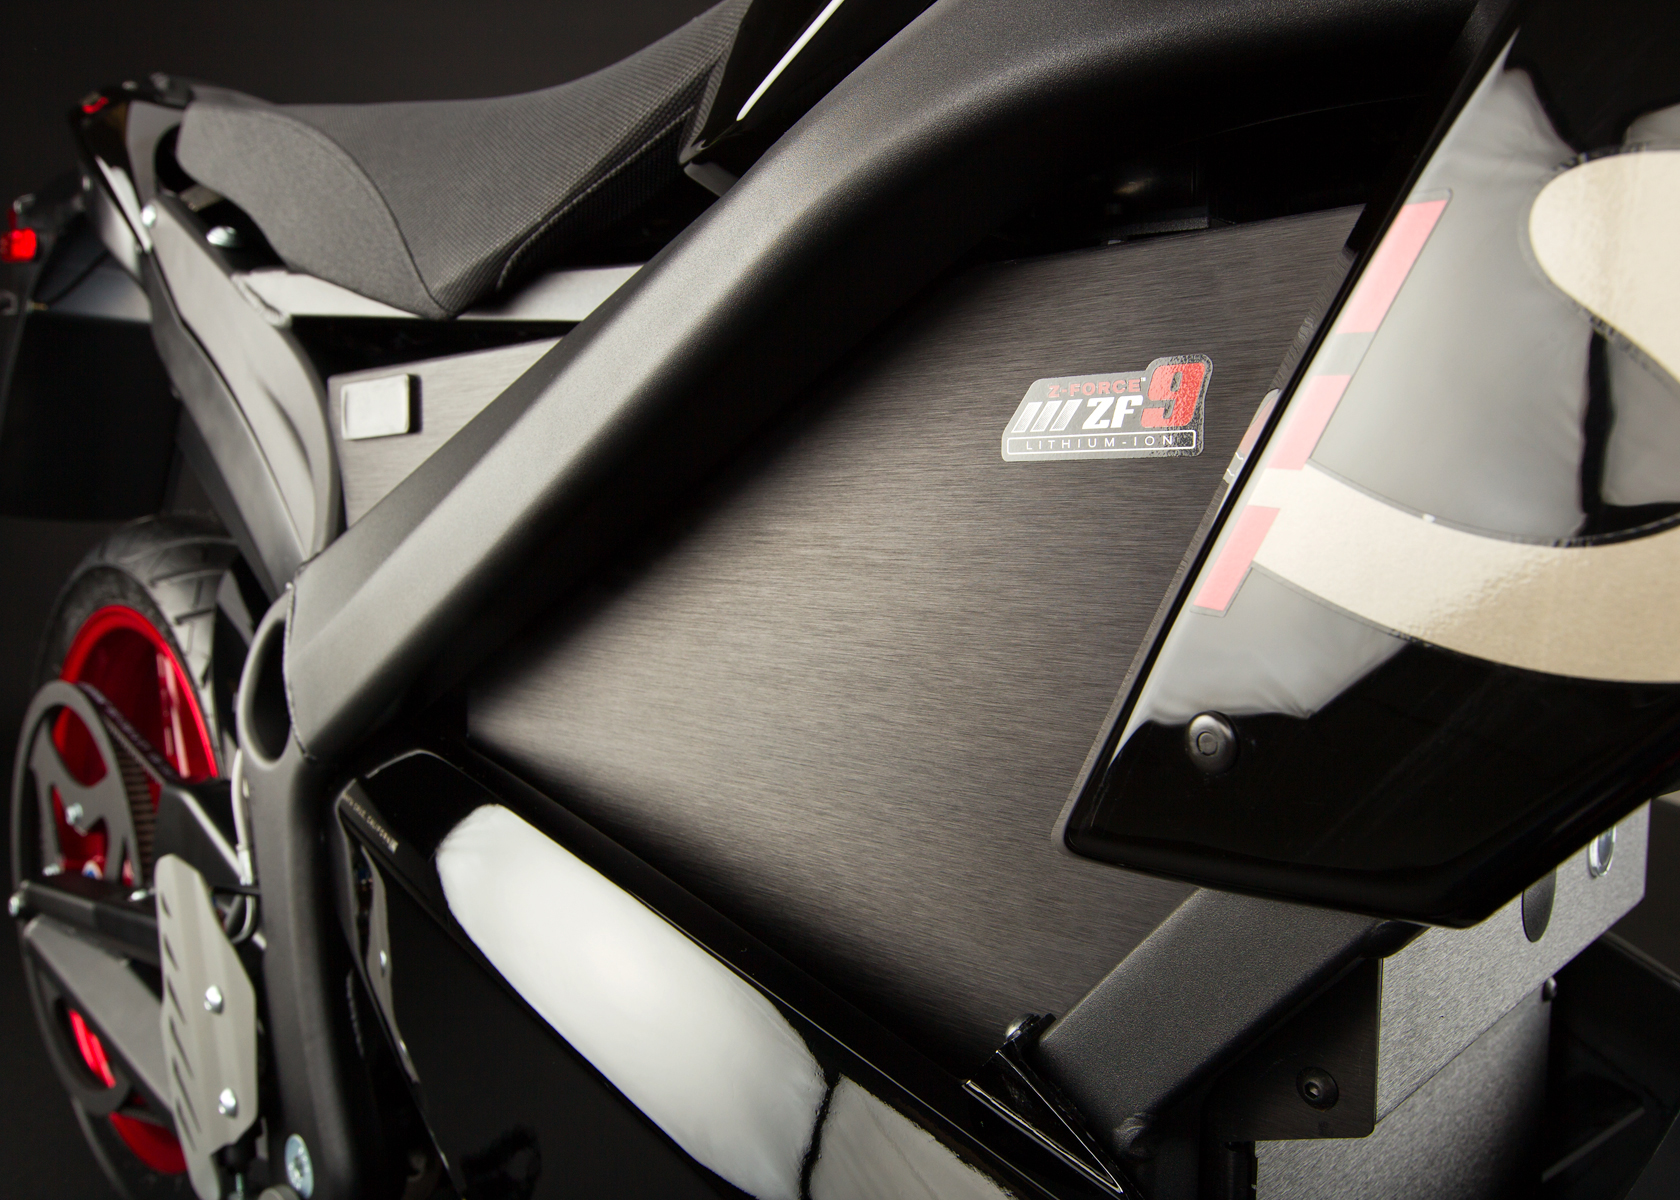 2012 Zero S Electric Motorcycle: Battery